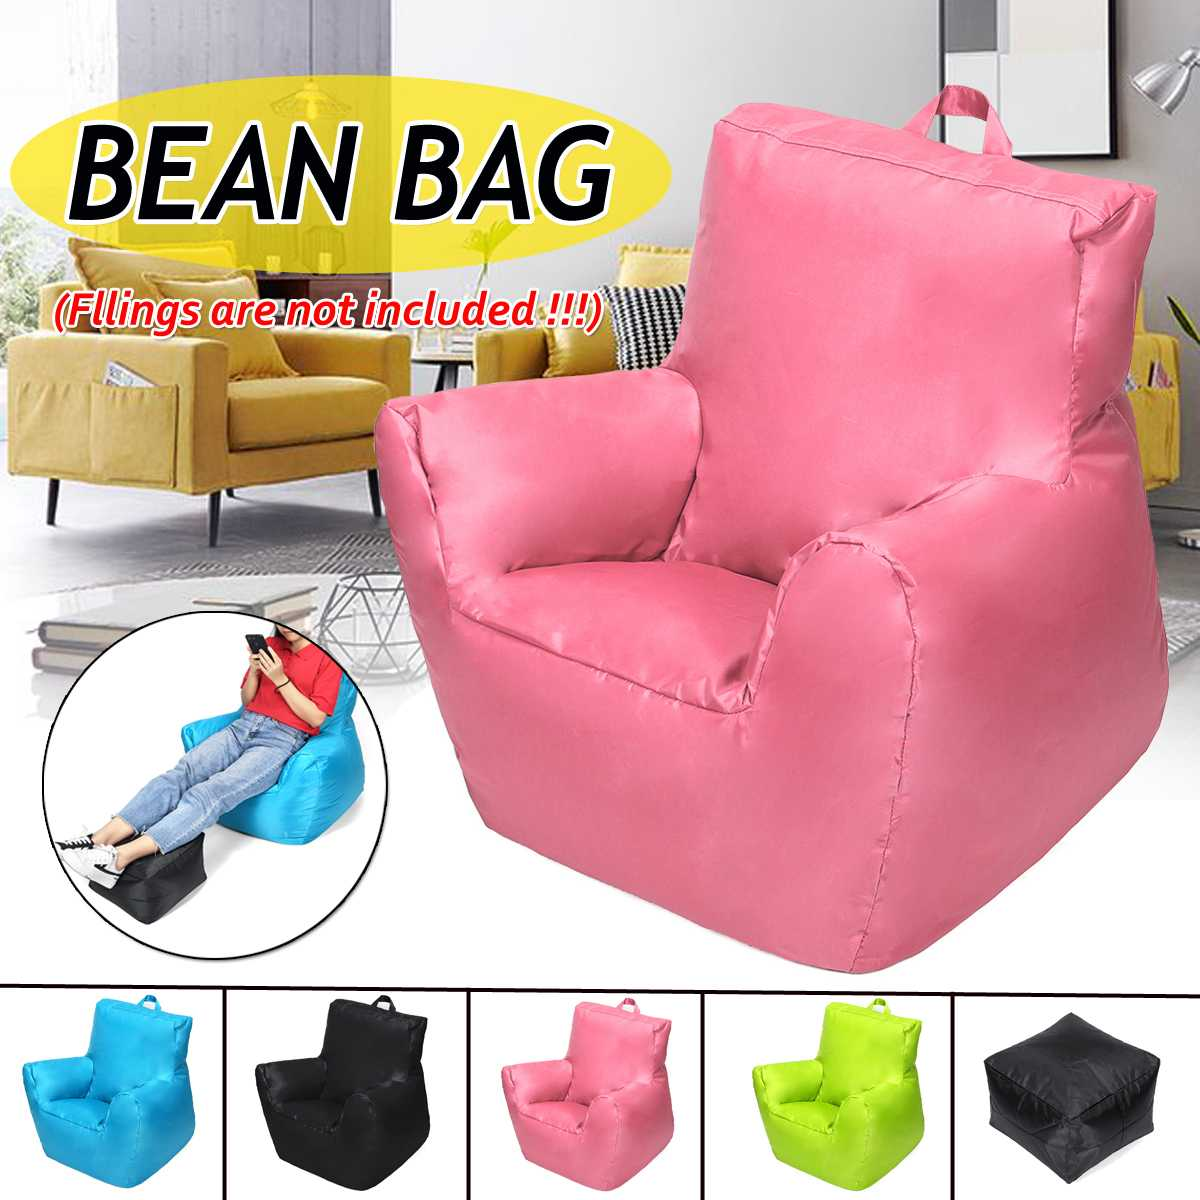 420D Oxford Cloth Lazy Sofas Cover Chairs Bean Bag Sofas Lounger Seat Bean Bag Pouf Puff Couch Tatami Living Room for Children|Bean Bag Sofas| |  - title=